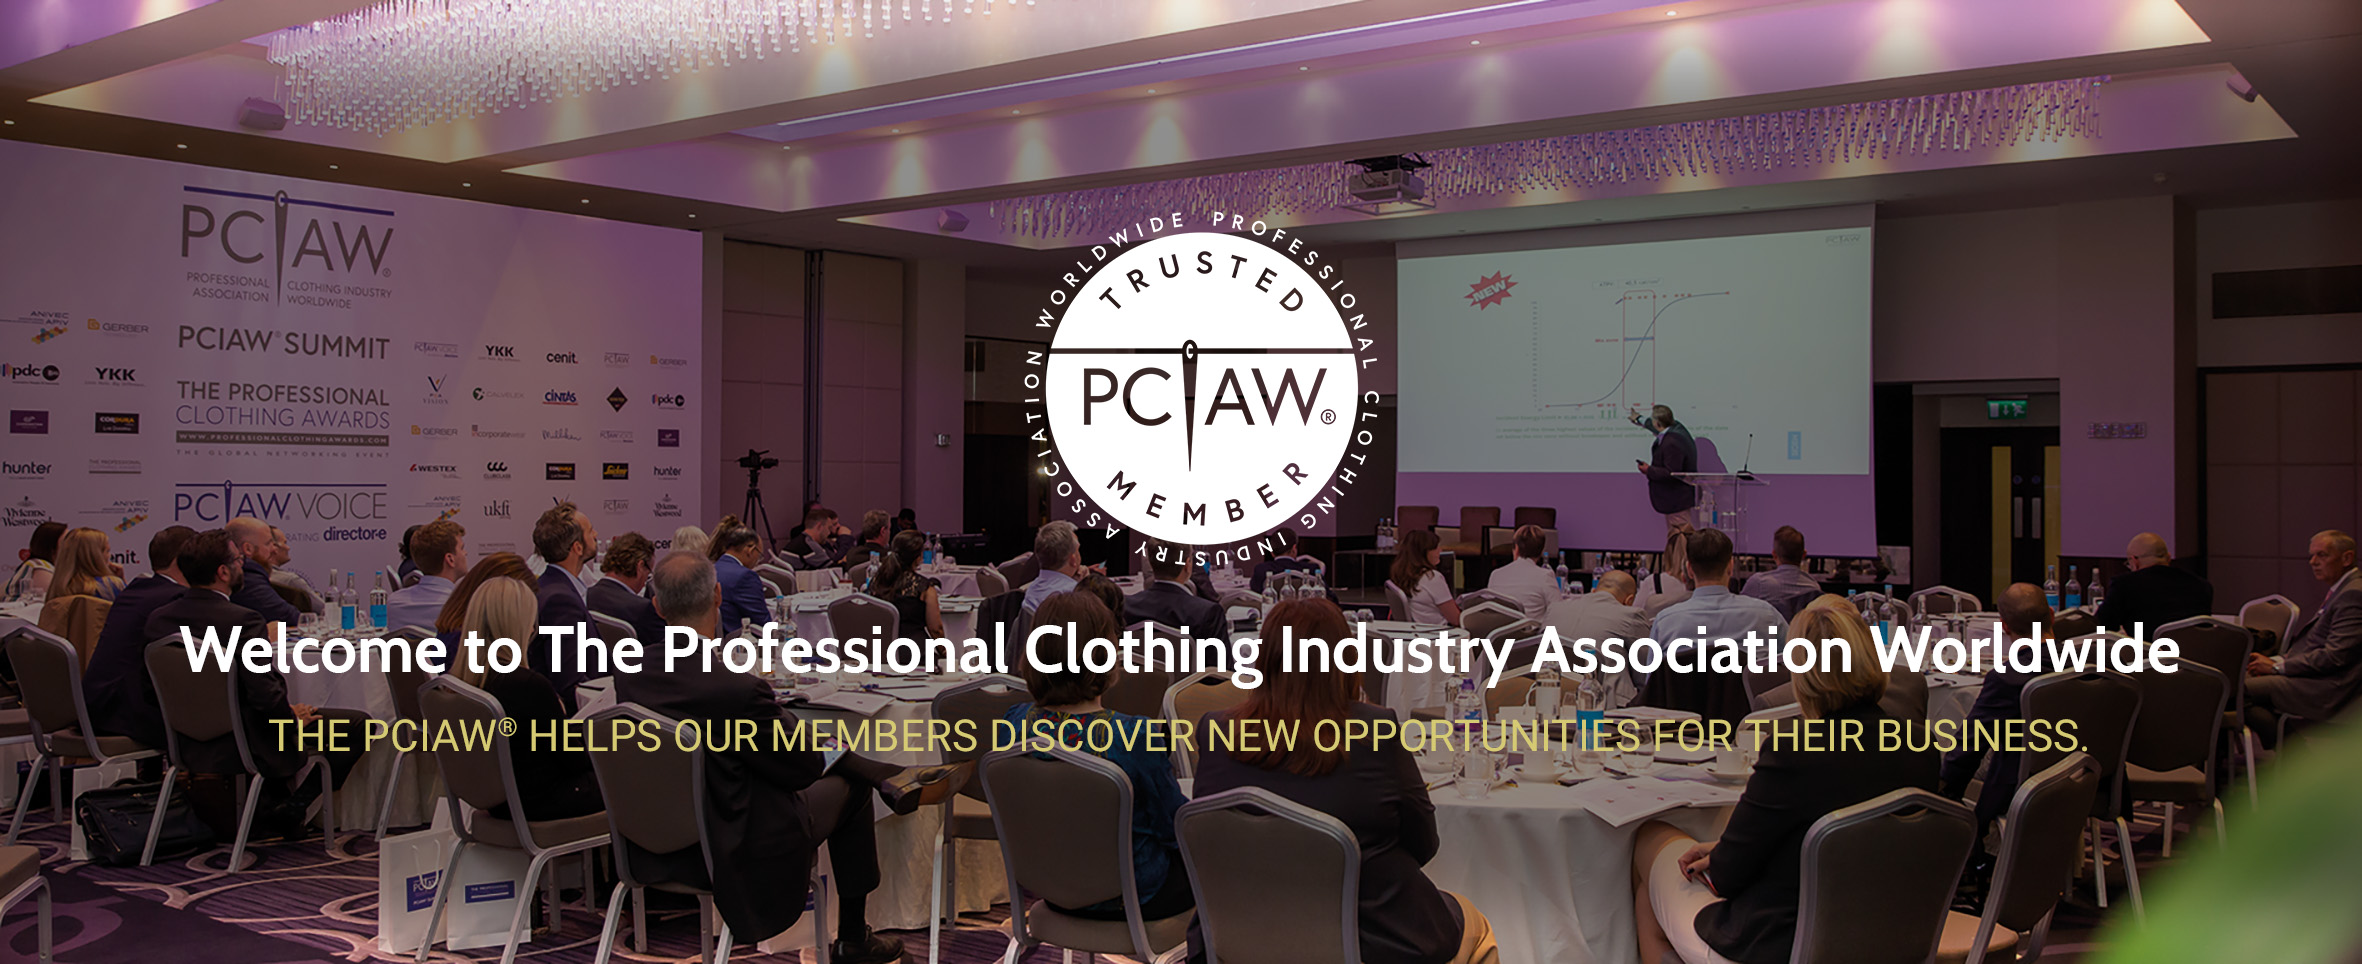 PCIAW Summit 2019